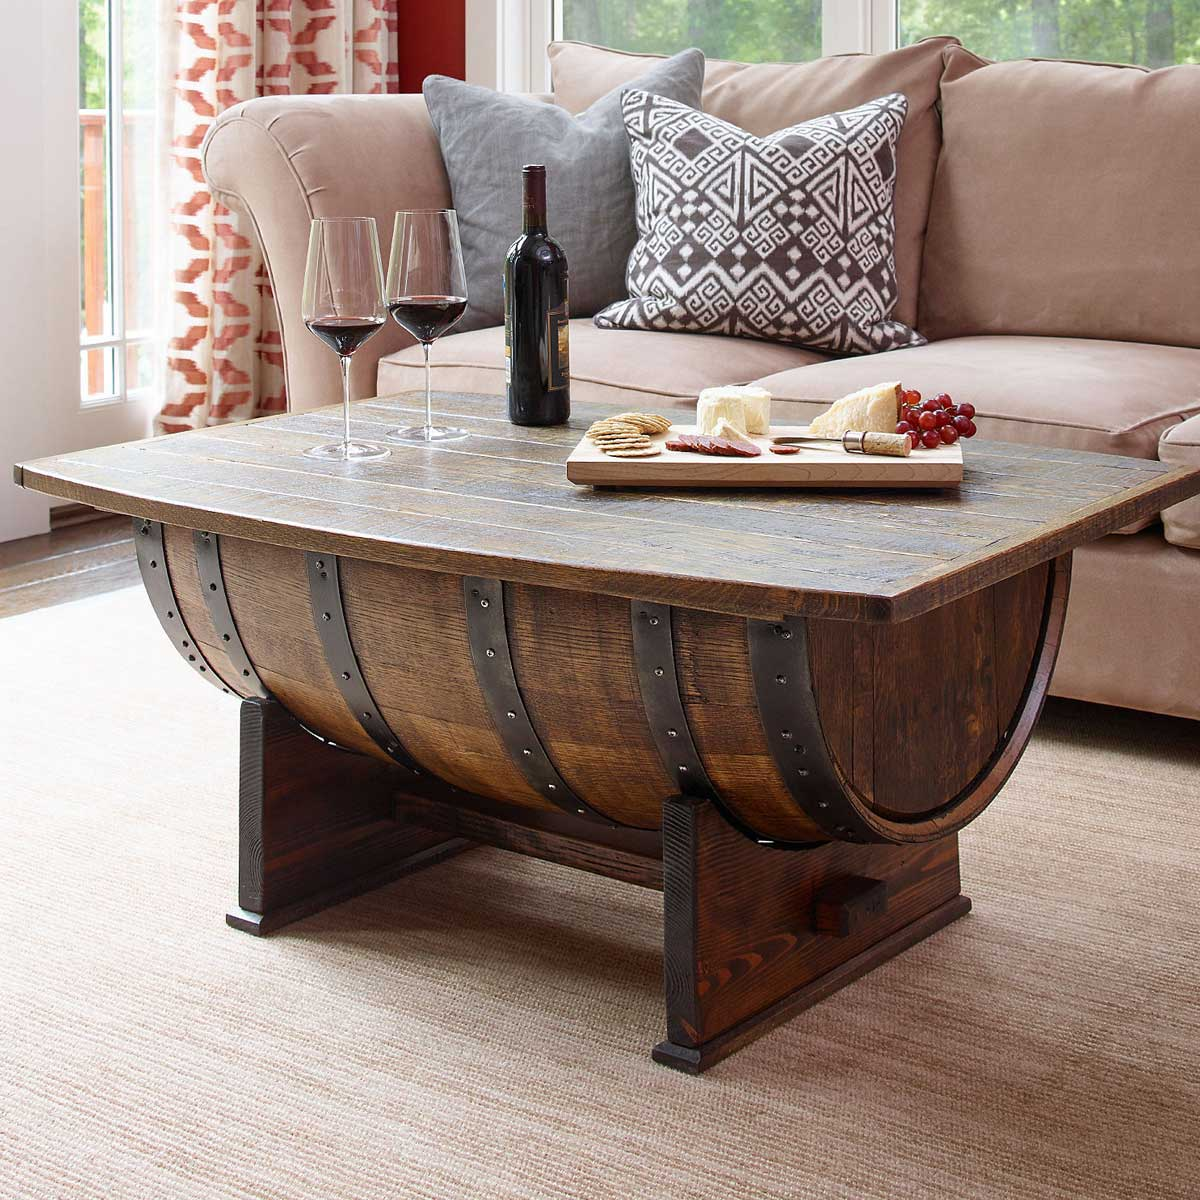 super cool homemade coffee table ideas unusual tables whiskeytable wood end diy whiskey barrel saarinen side lexington furniture dresser laura ashley bar stools futon lounger